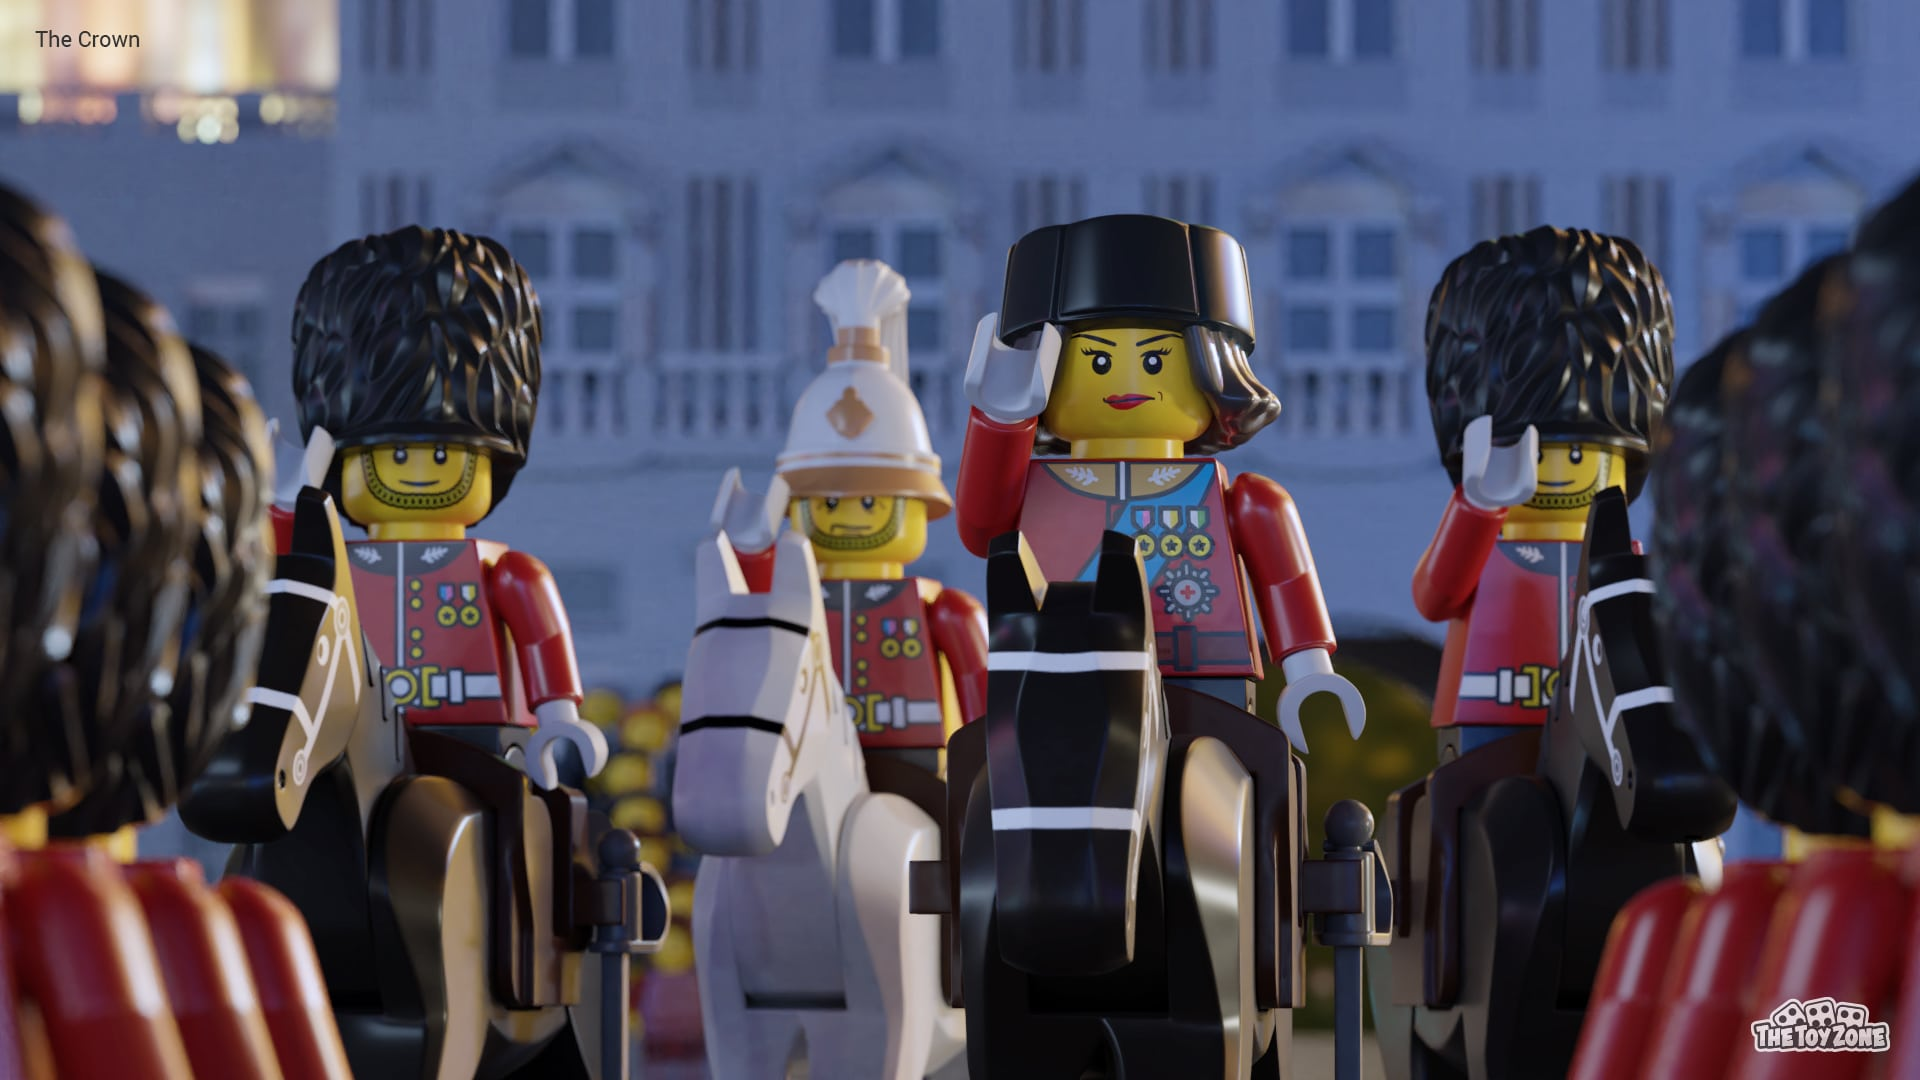 The Crown, Bridgerton, and other Netflix series get recreated in LEGO 16